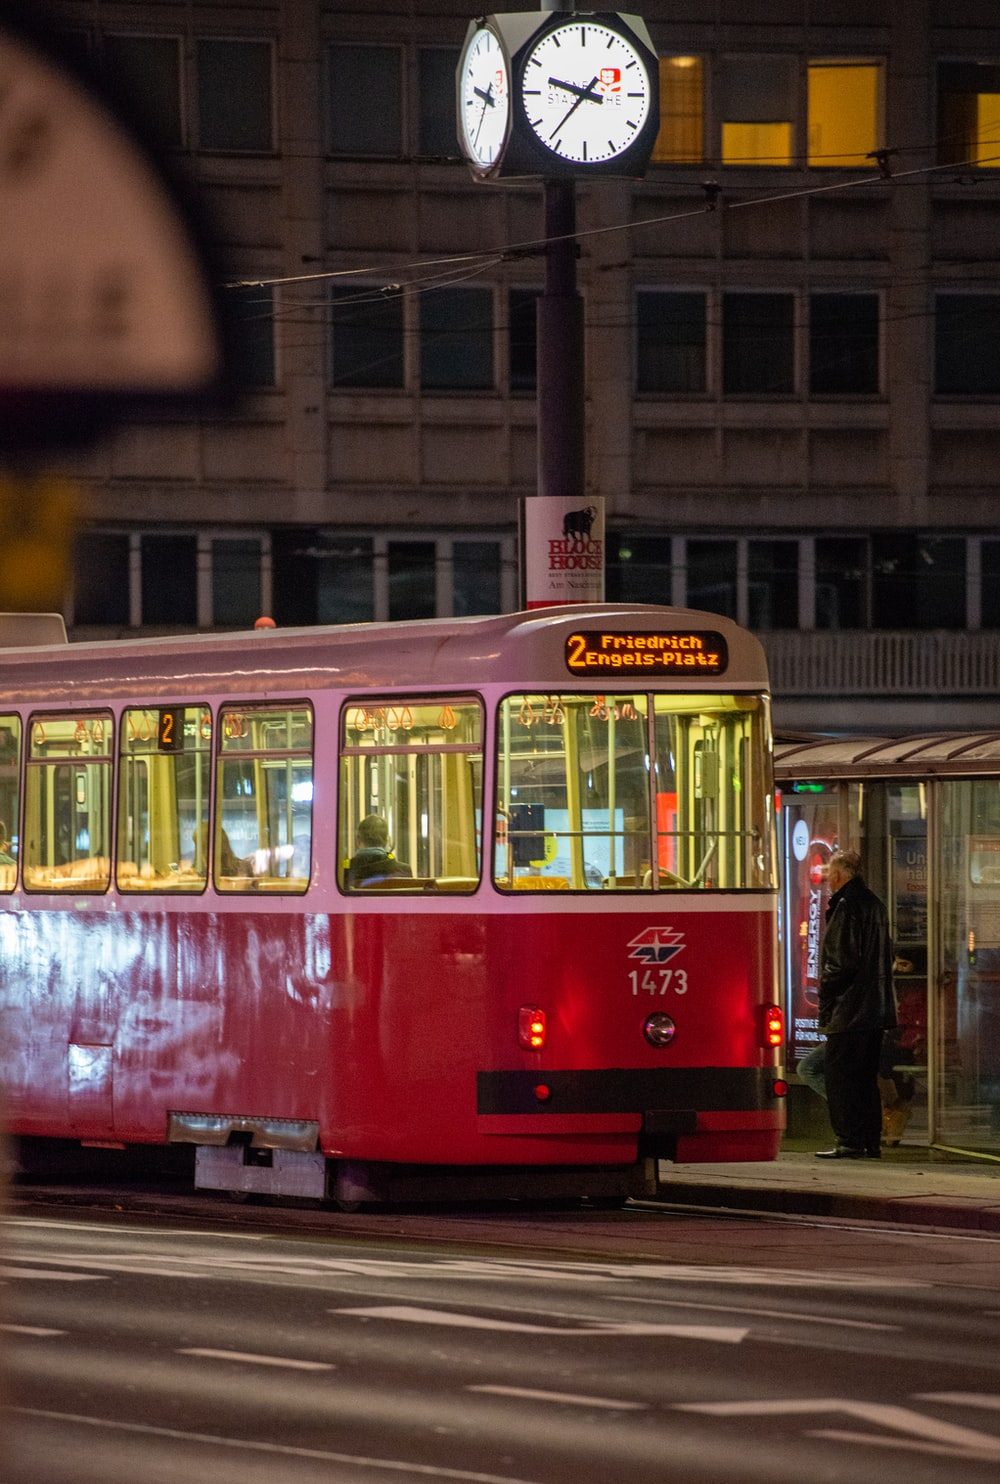 red and white tram on the city during daytime